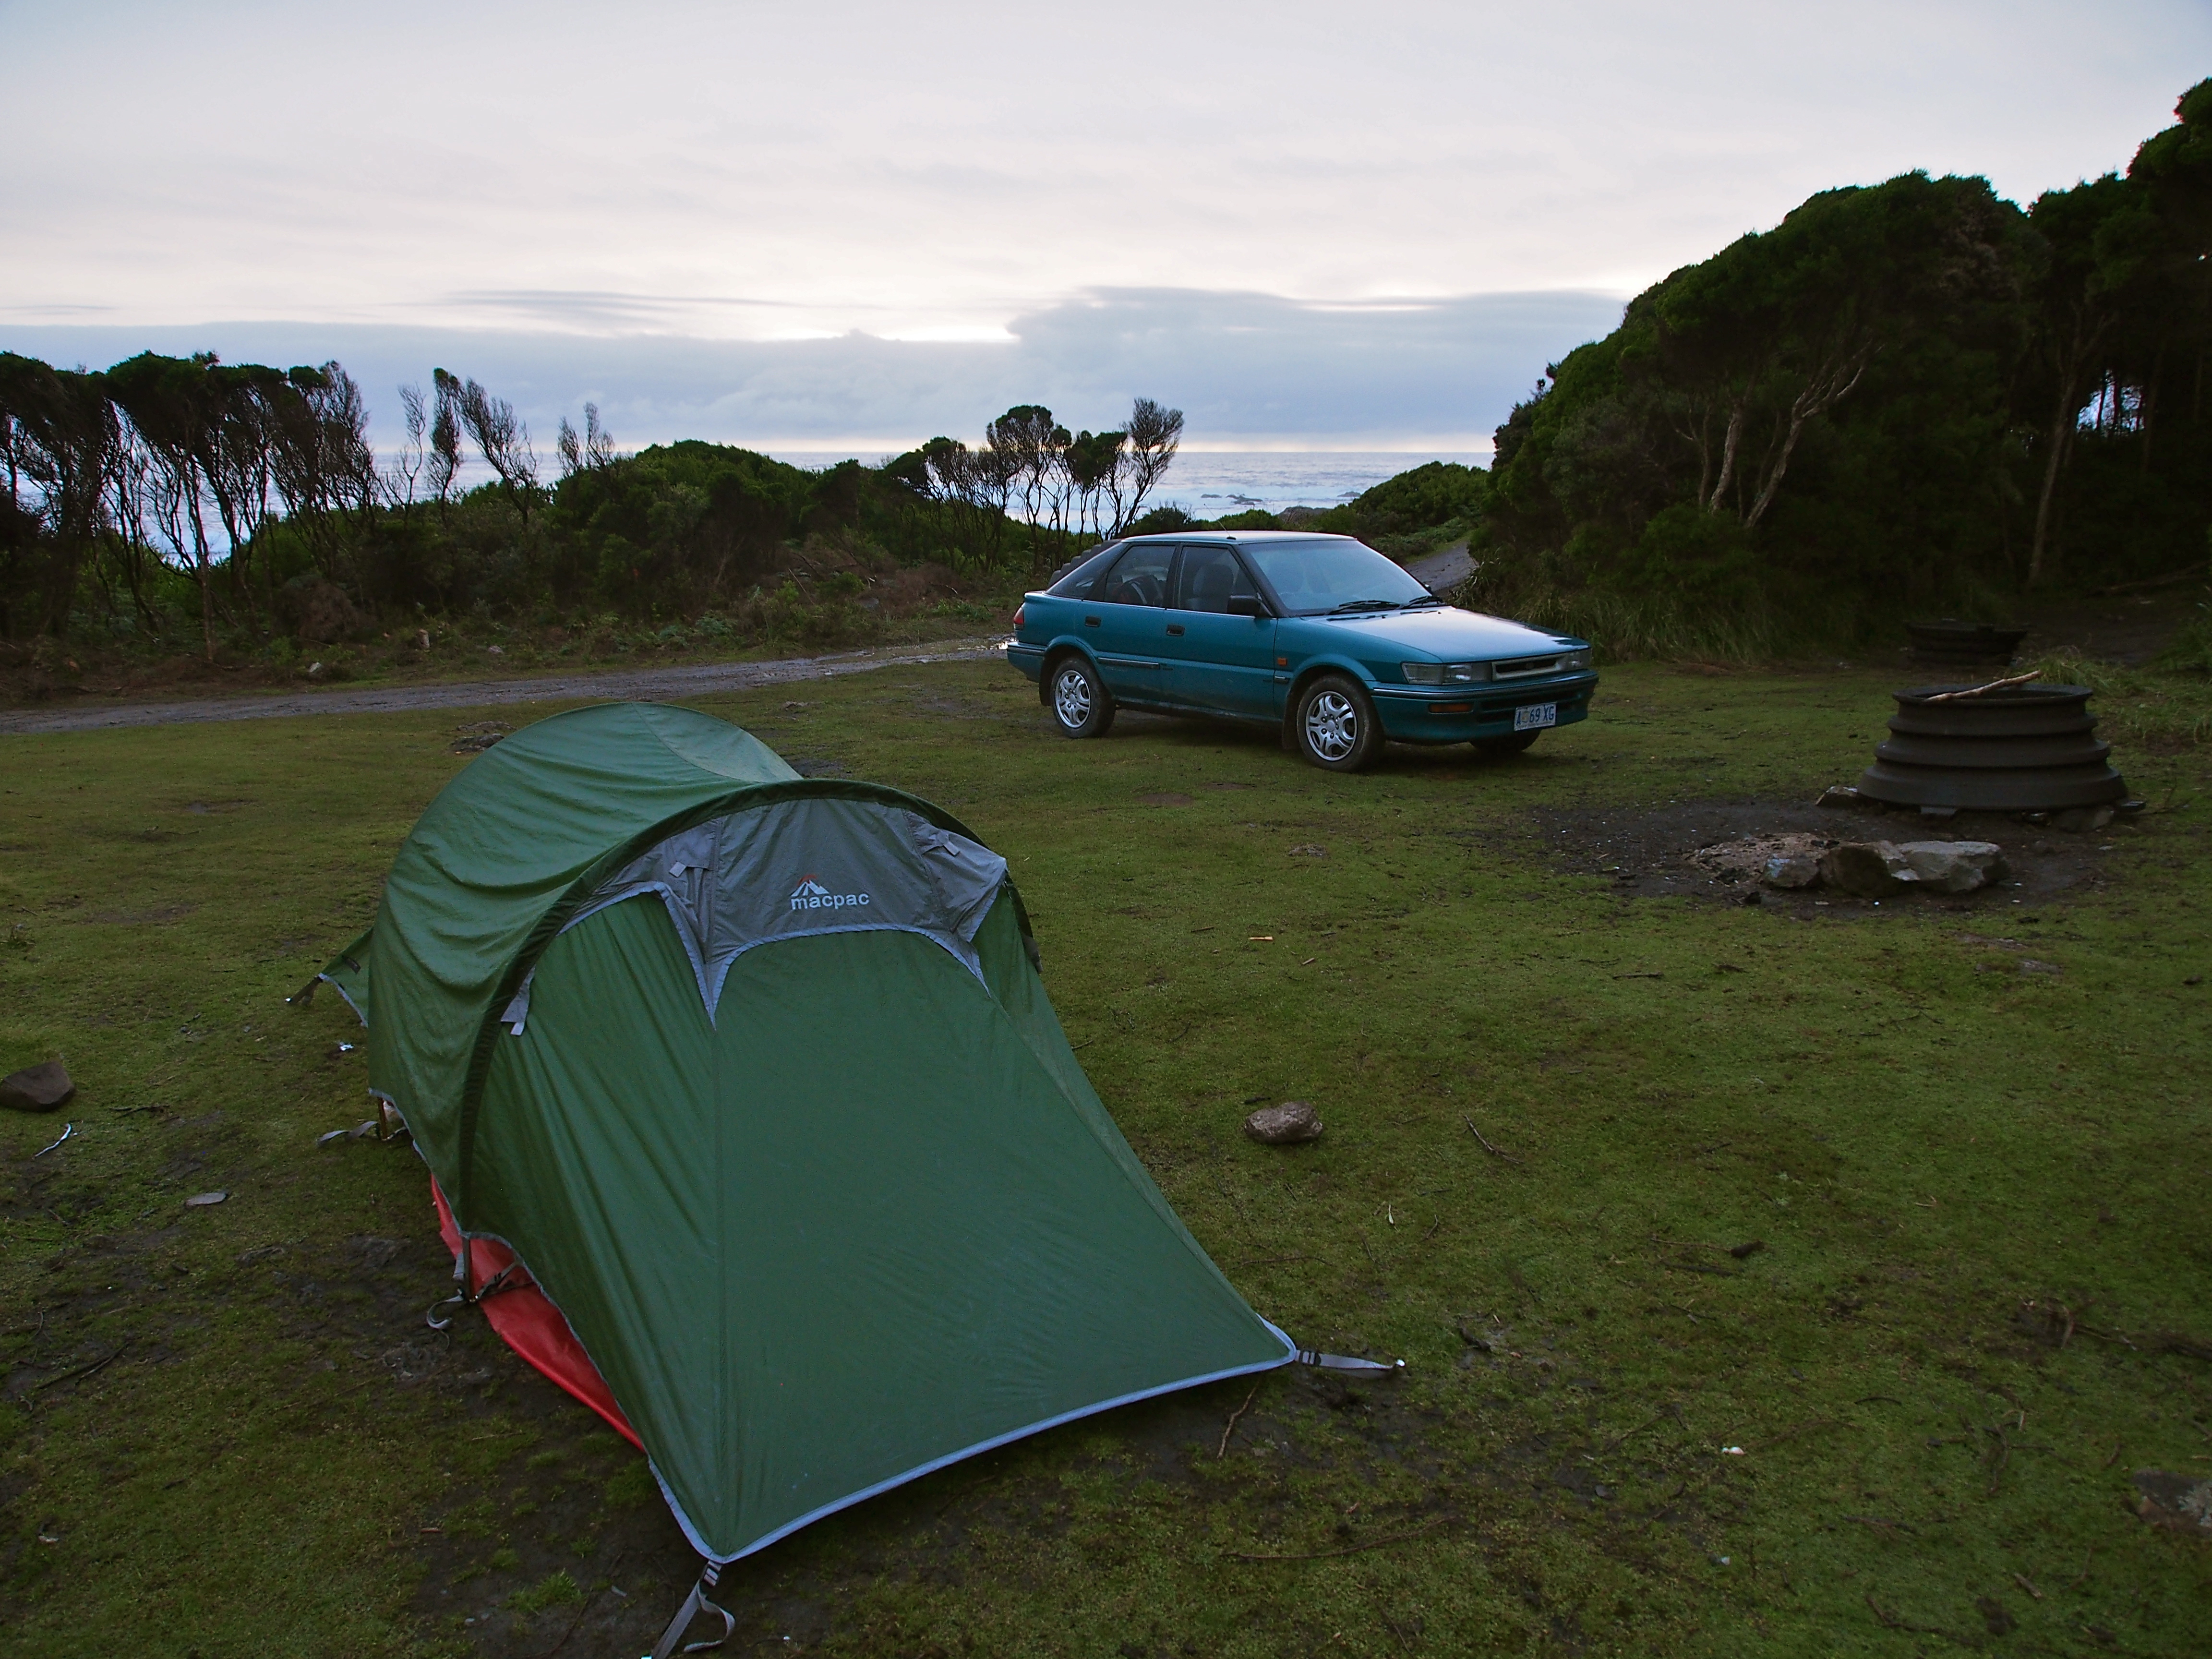 Camp at Trial Harbour that night